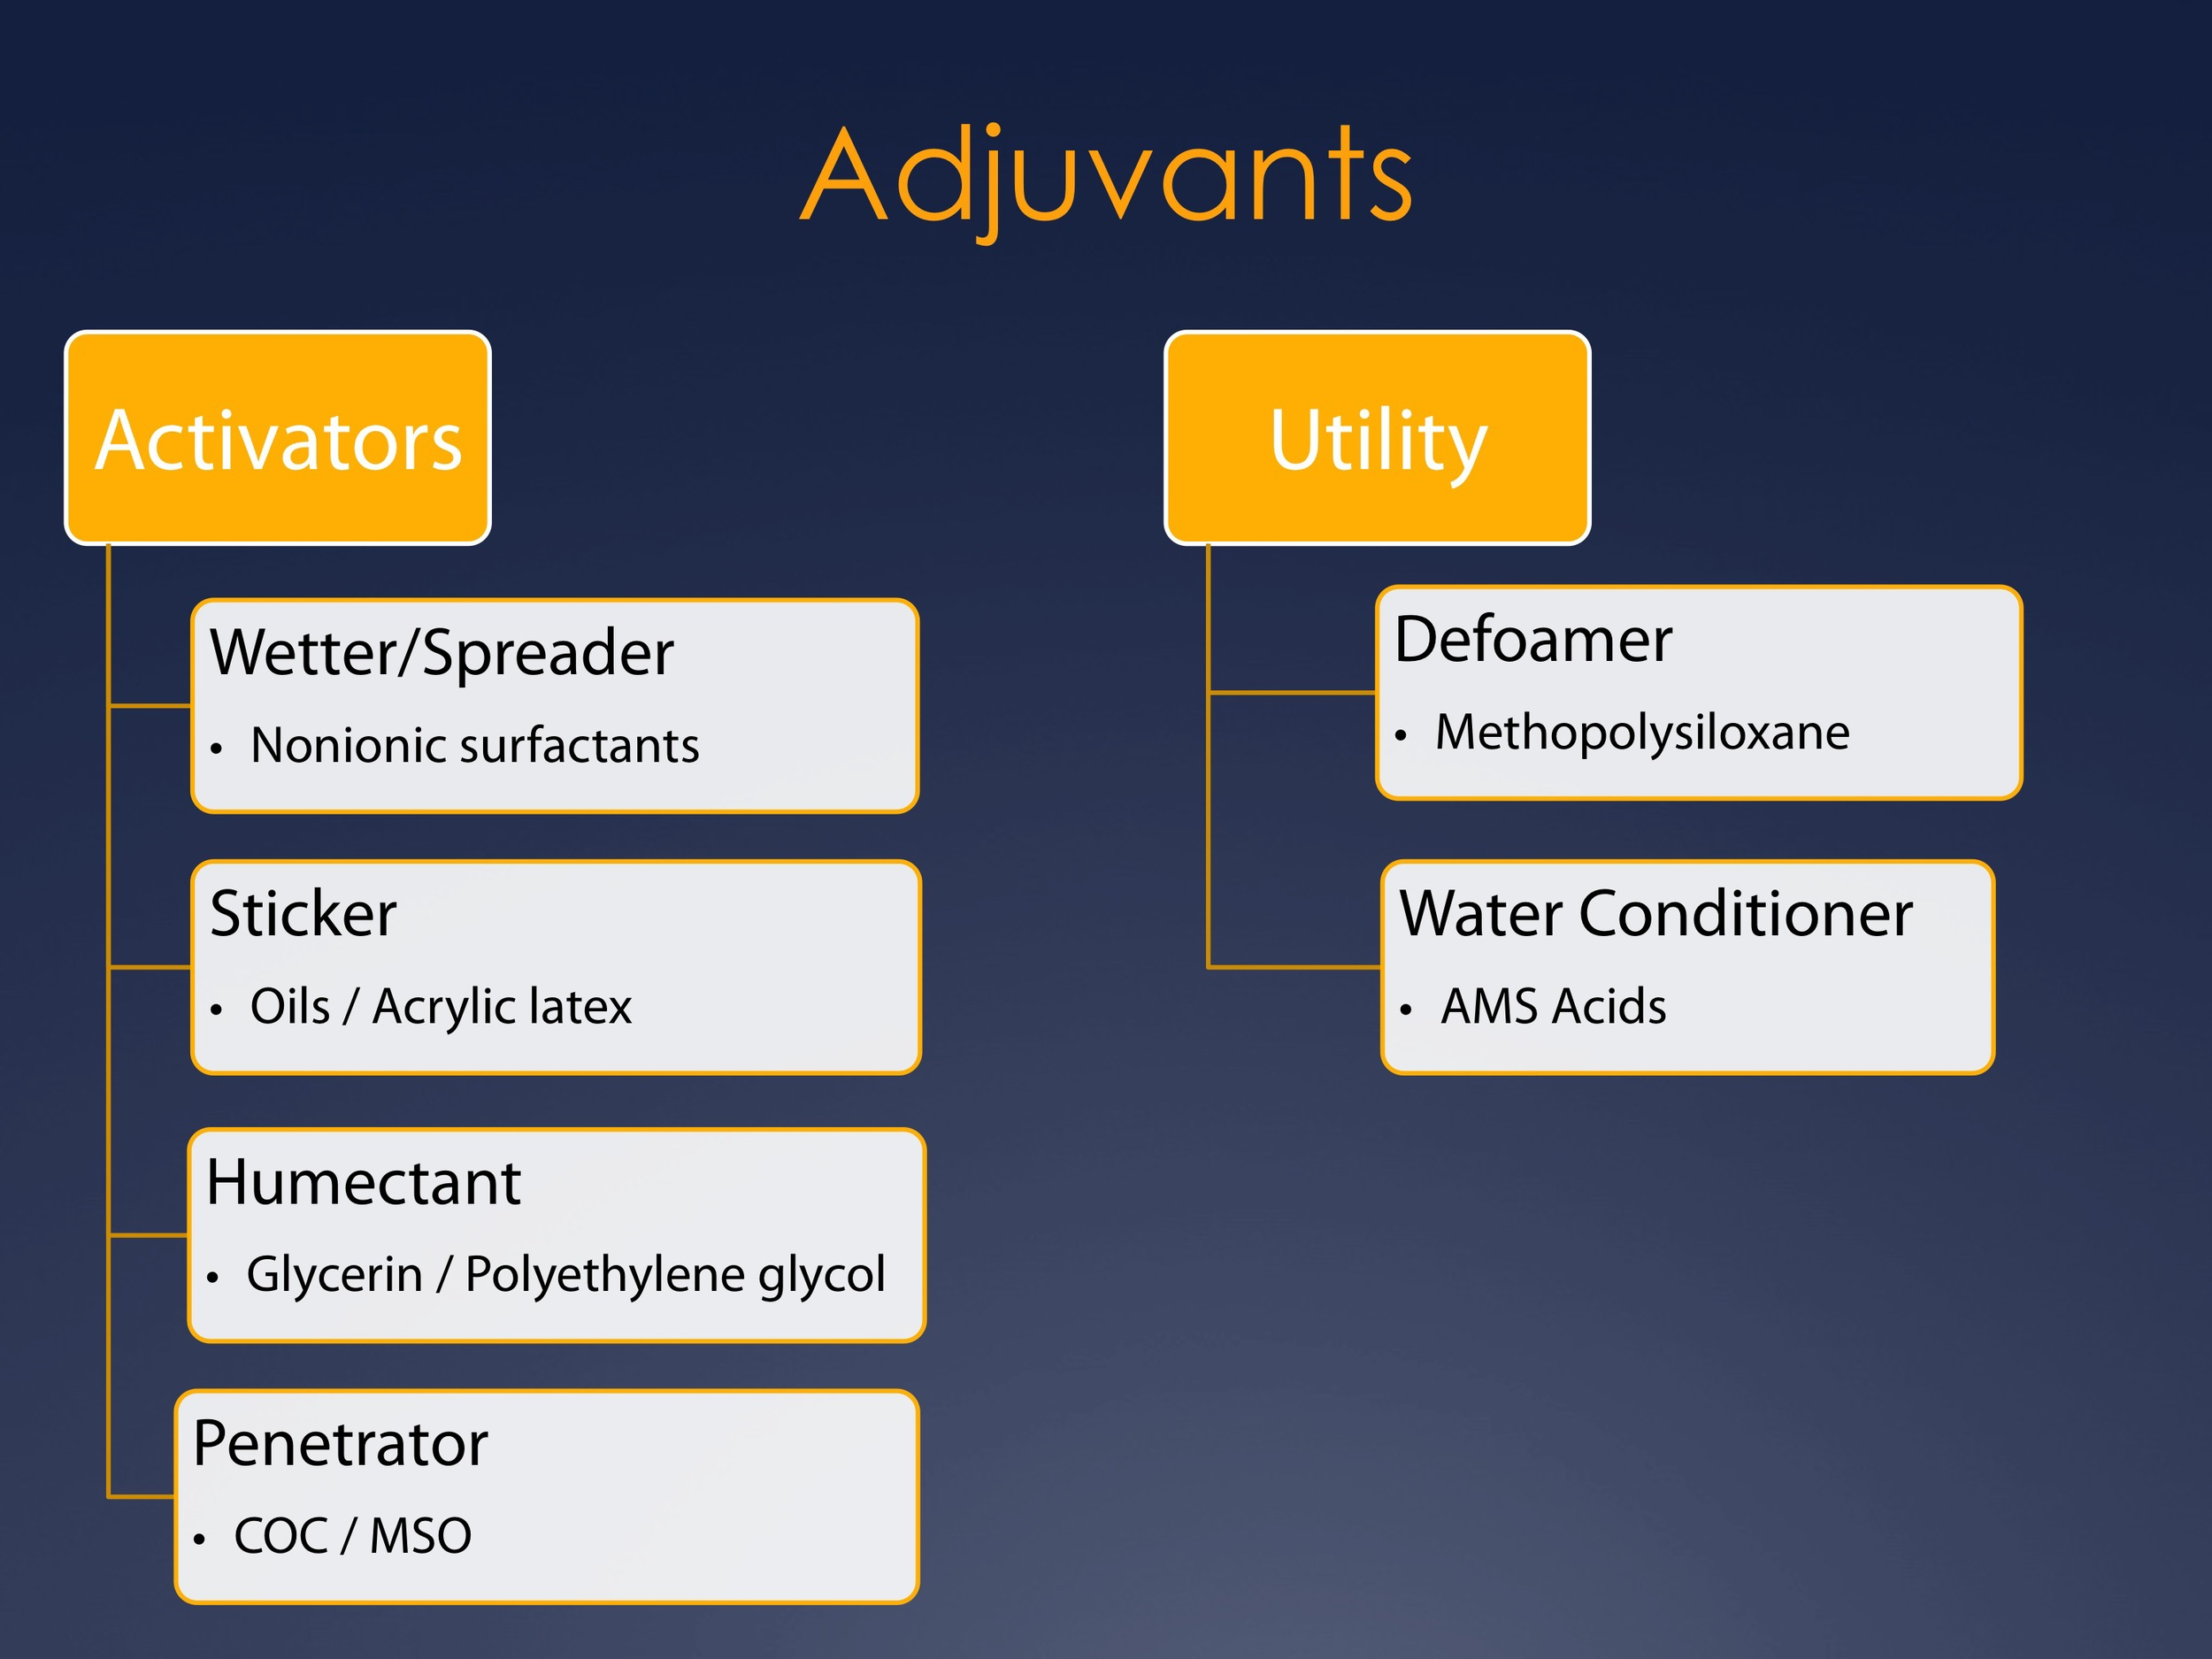 Figure 1. Examples of activator and utility type adjuvants (from Plant and Soil Science eLibrary).